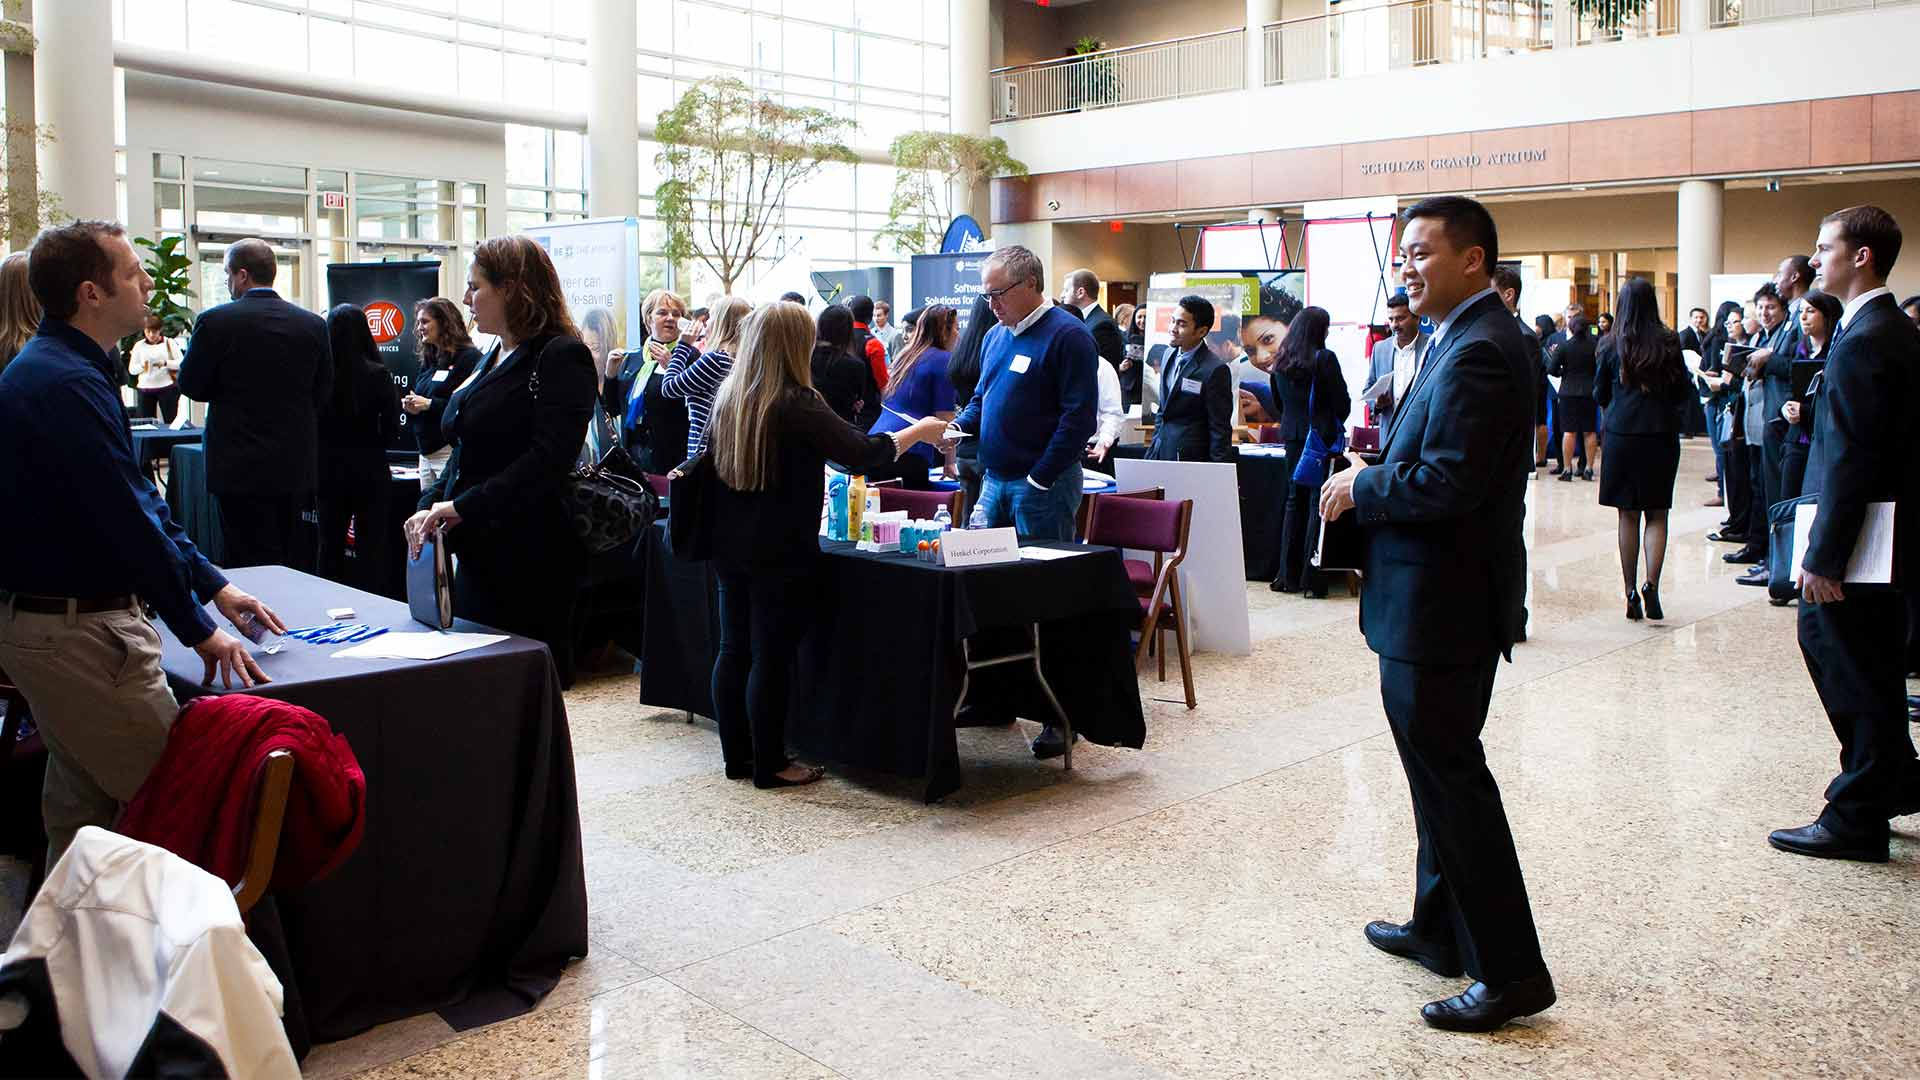 Students engage with employers at a career fair.